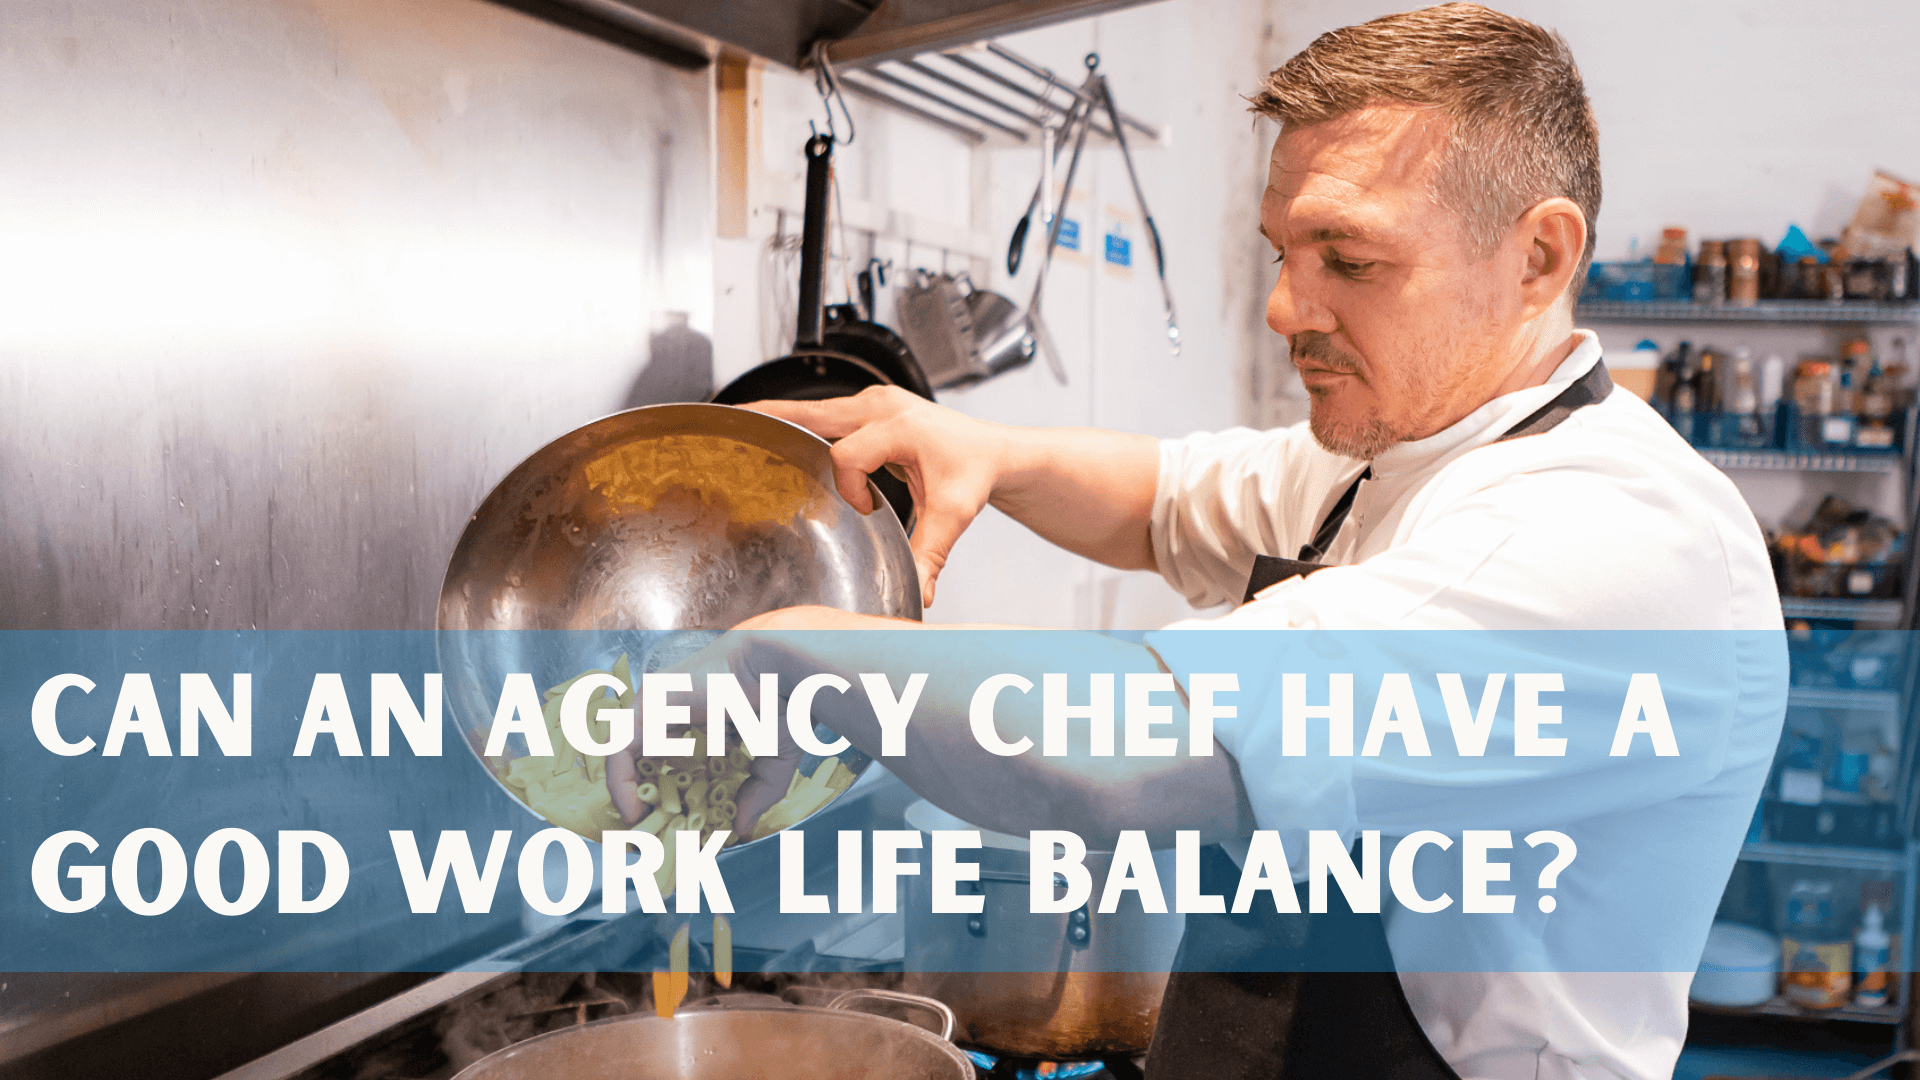 Can A Chef Have A Good Work Life Balance?